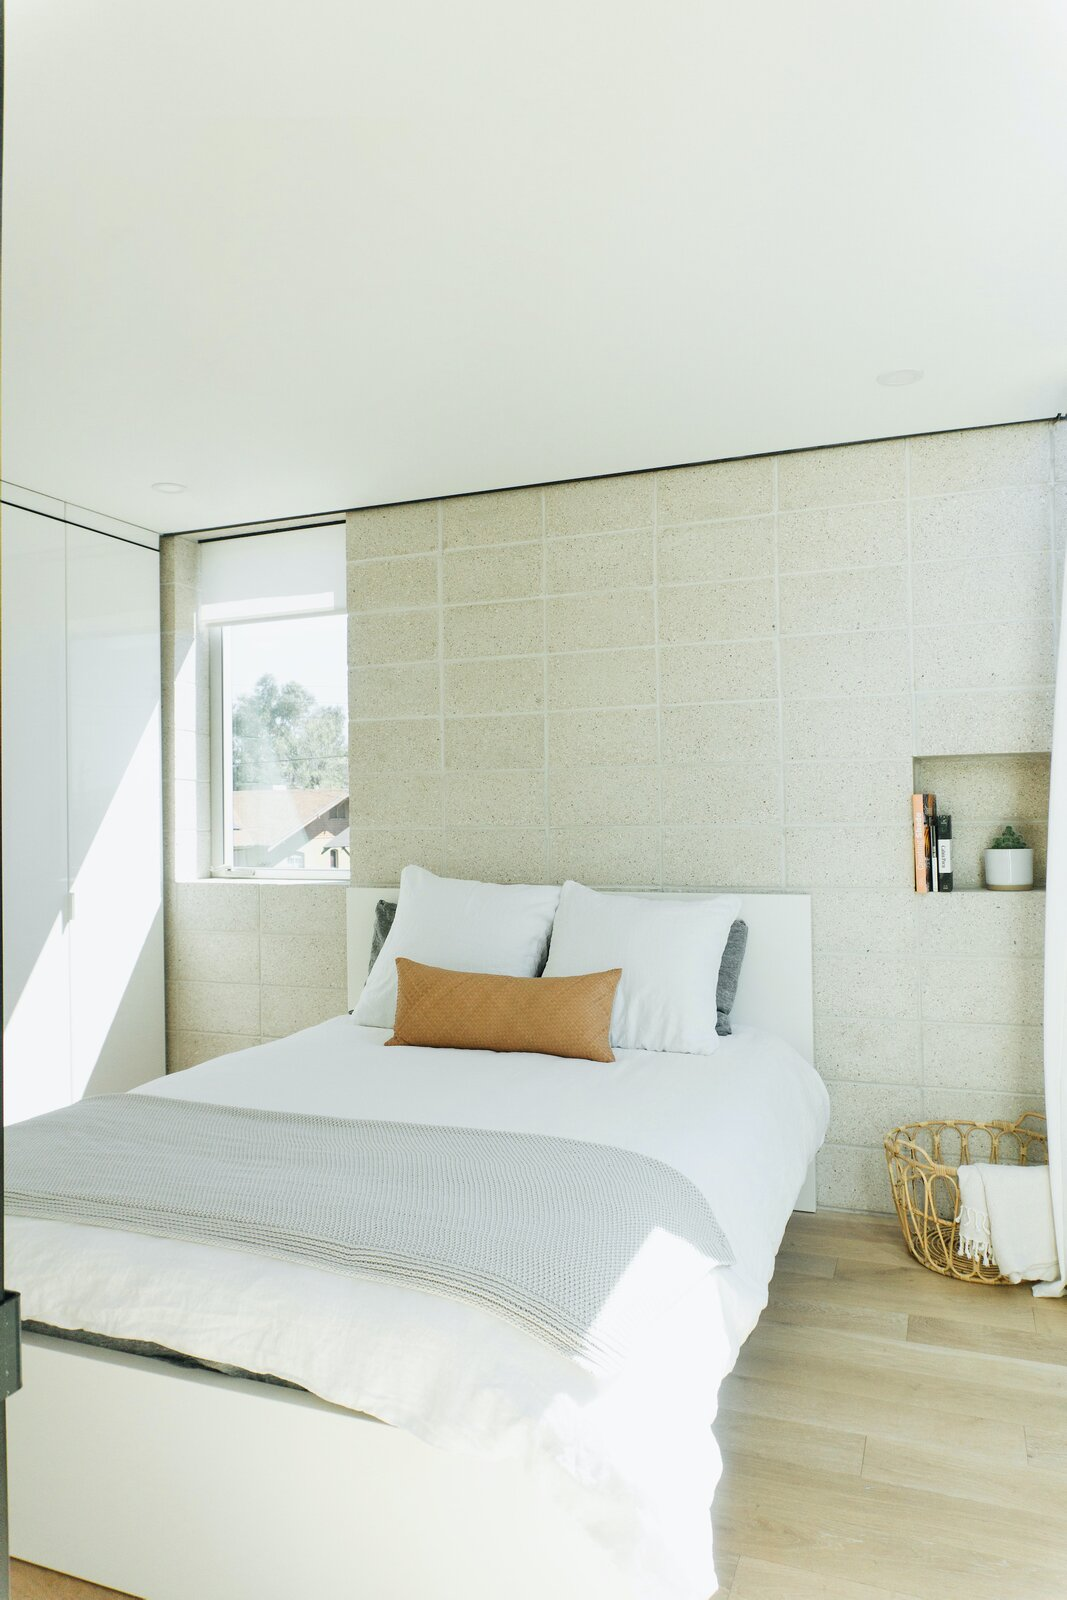 Bedroom of White Stone Flats by Benjamin Hall Design.